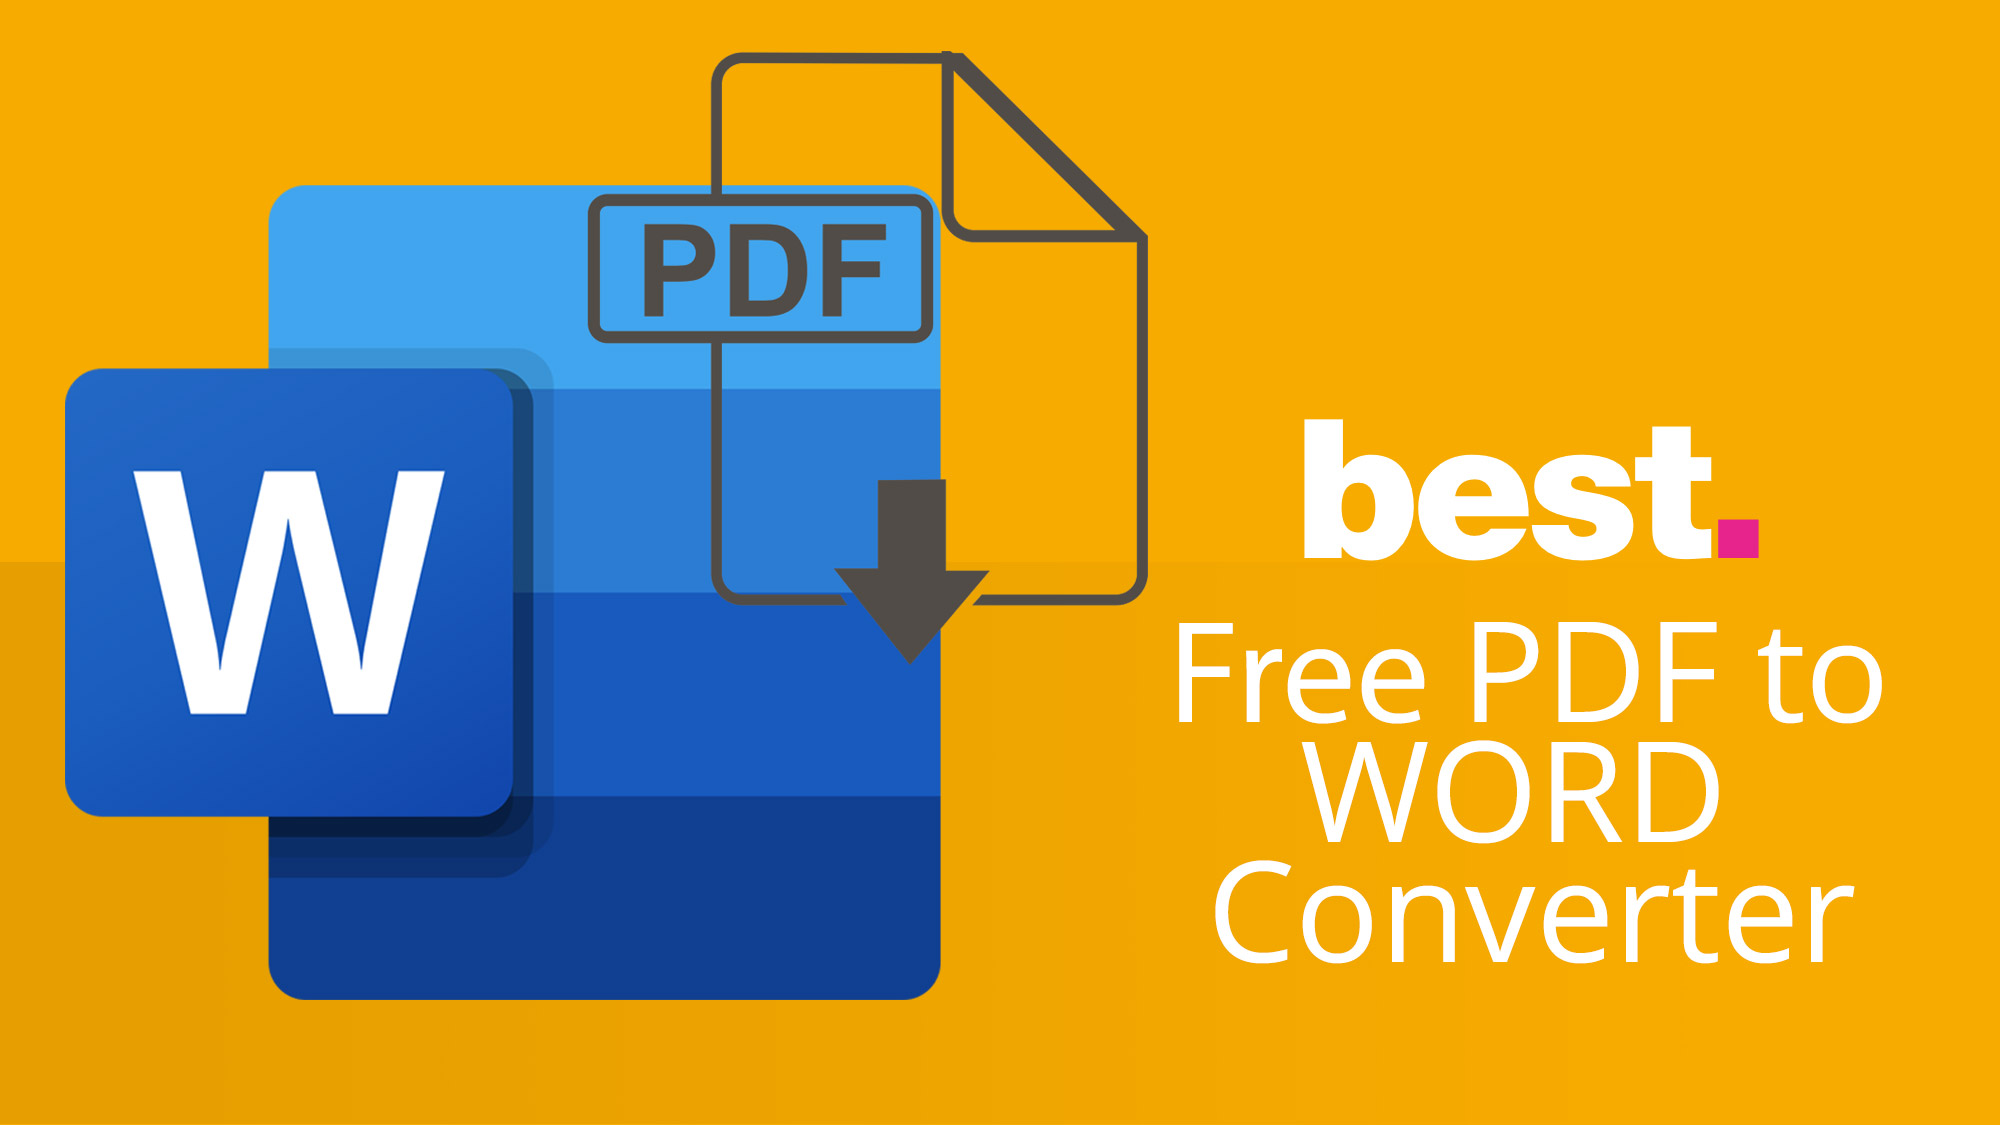 convert image file to word document online free